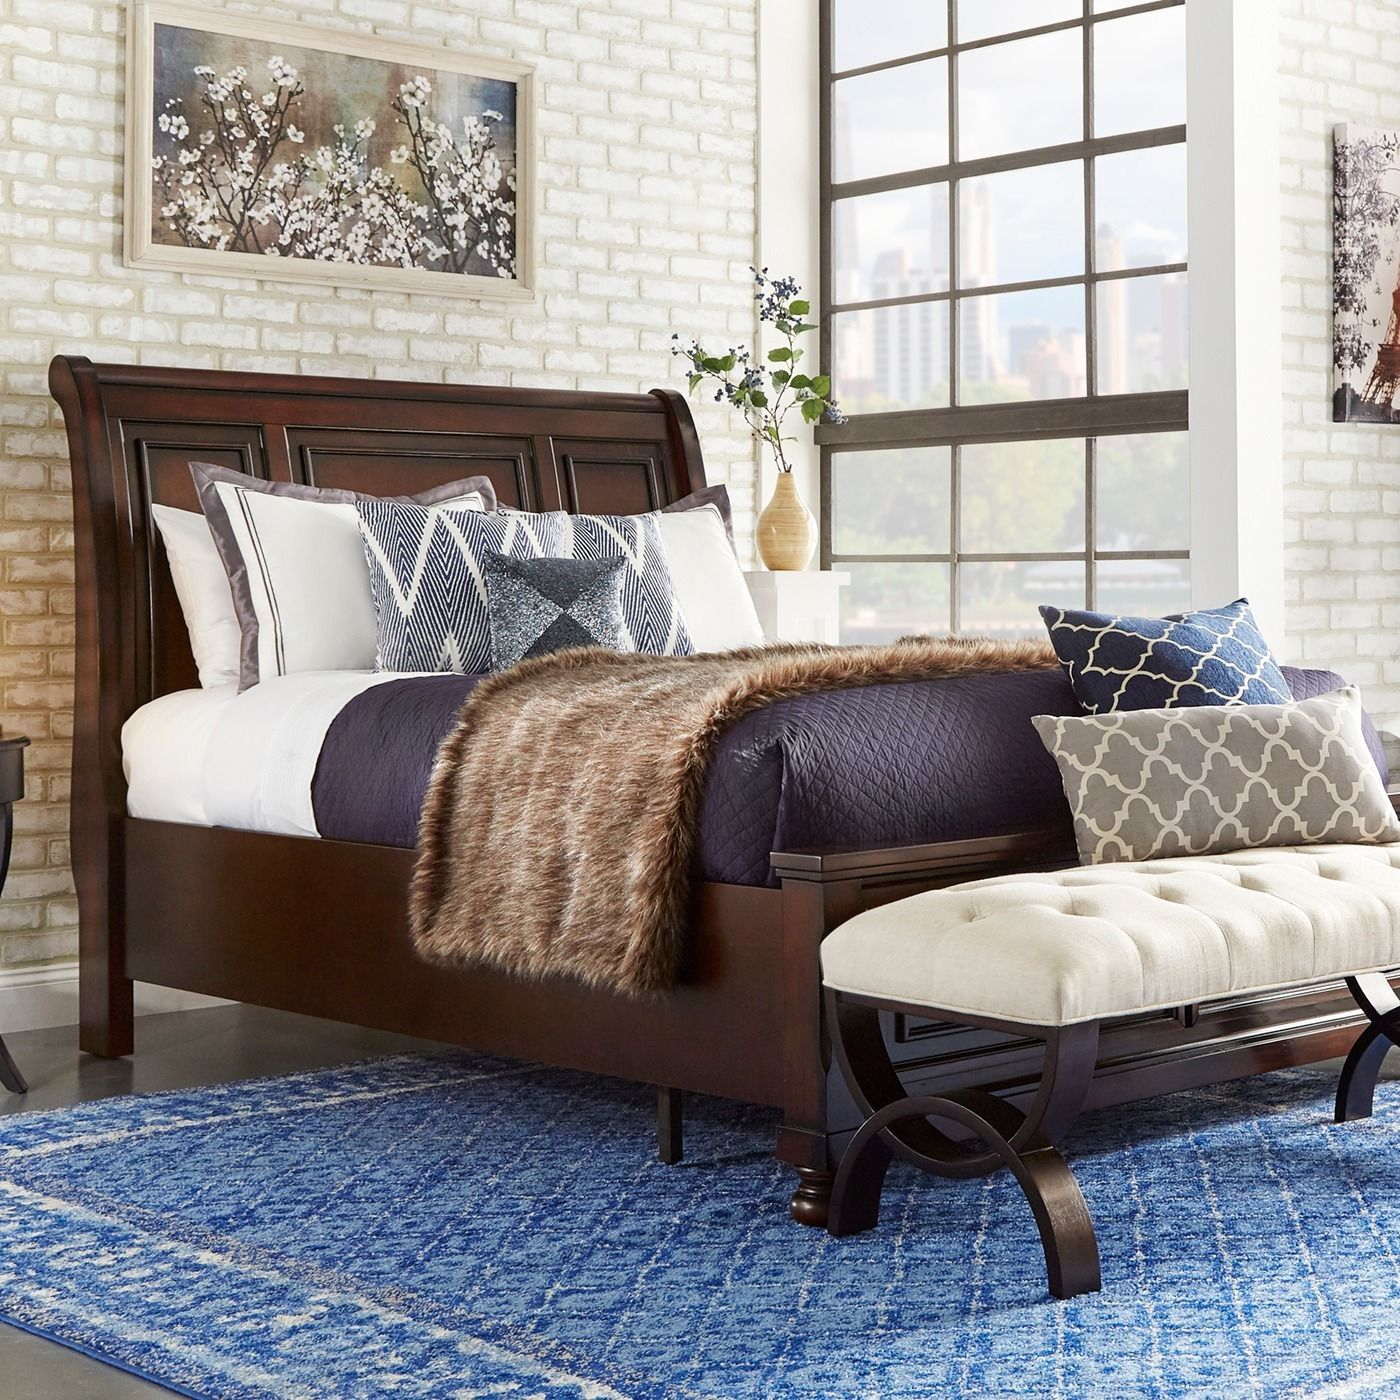 Elliot Distressed Warm Brown 2-drawer Wood Sleigh Bed by iNSPIRE Q Classic  (Elliot